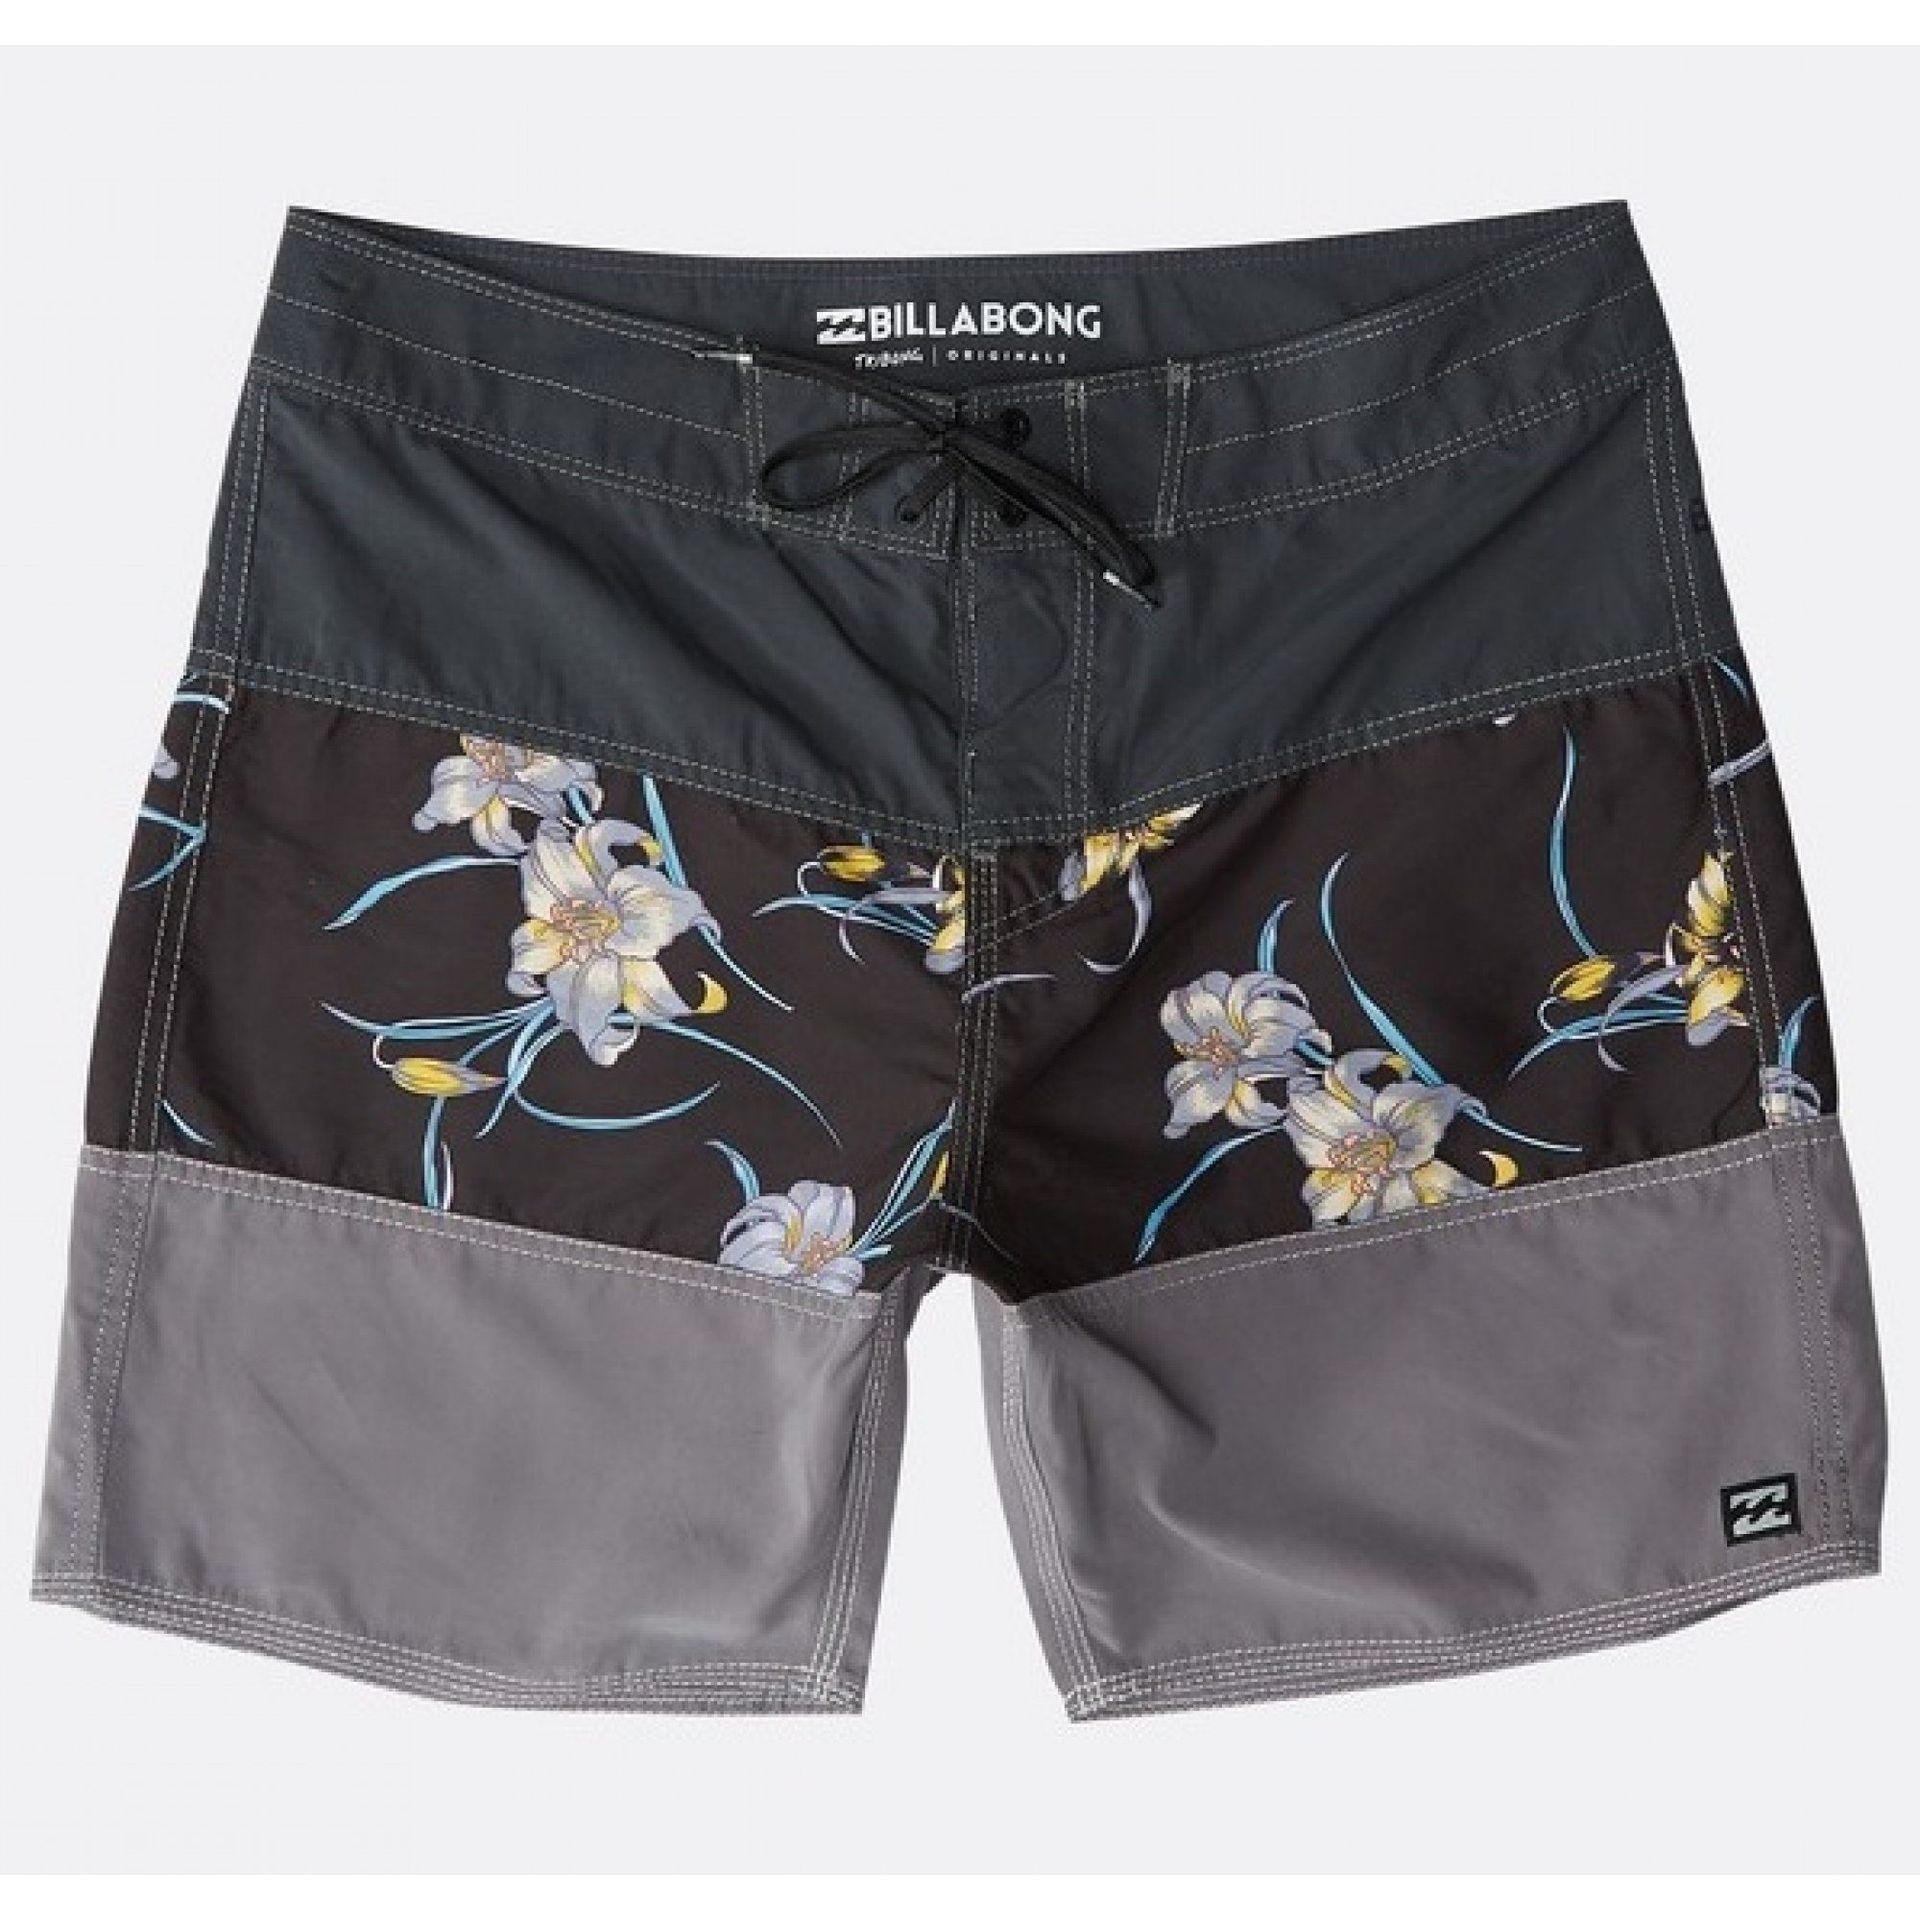 BOARDSHORTY BILLABONG TRIBONG OG BLACK